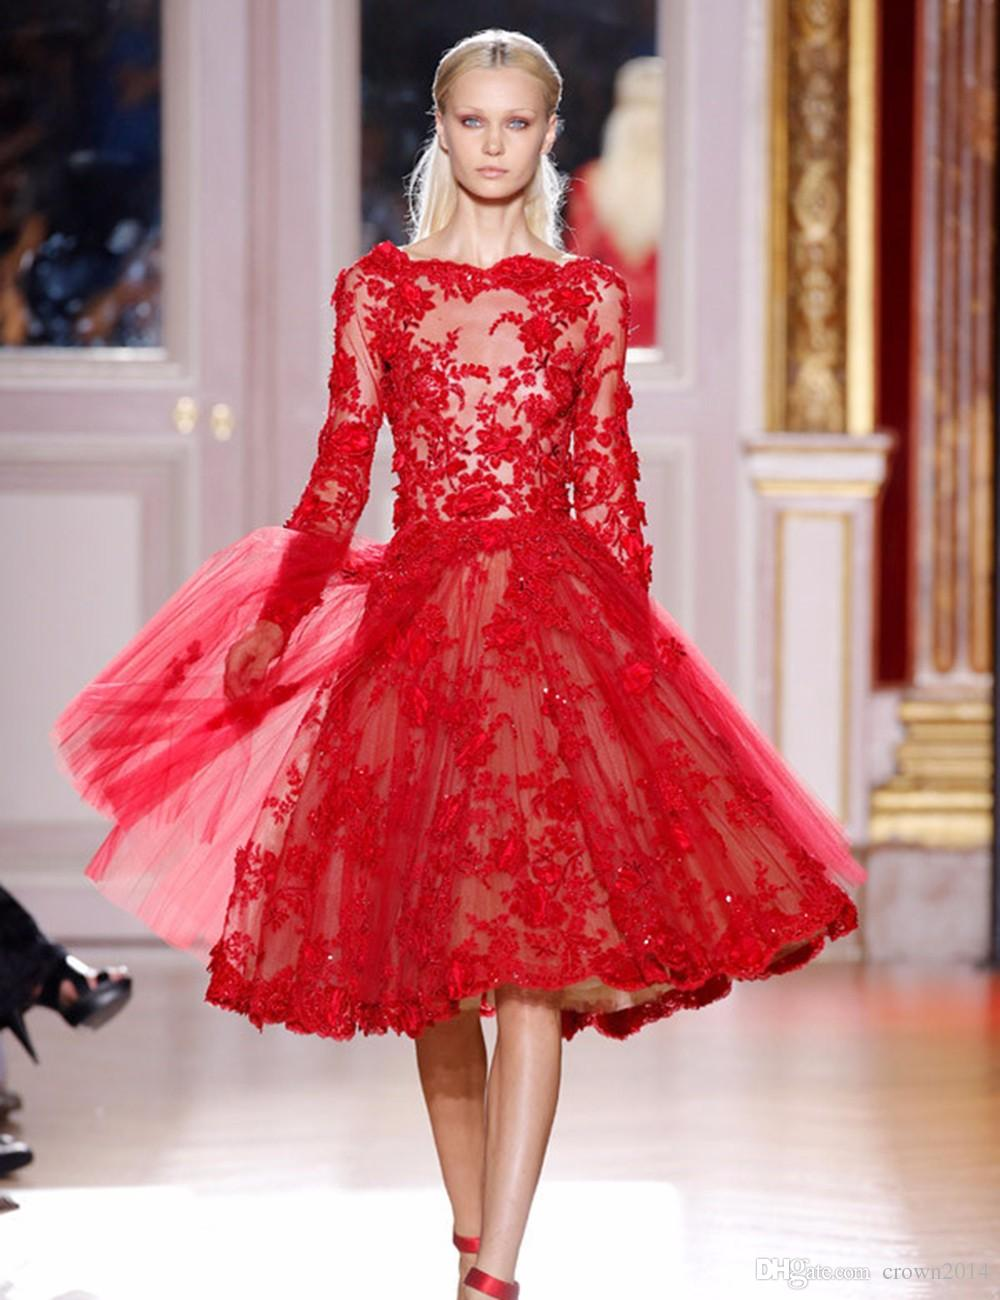 Zuhair Murad Red Lace Prom Dress Knee Length A-Line Boat Neck Appliques Beaded Illusion Long Sleeves Evening Party Dress Cheap Made In China